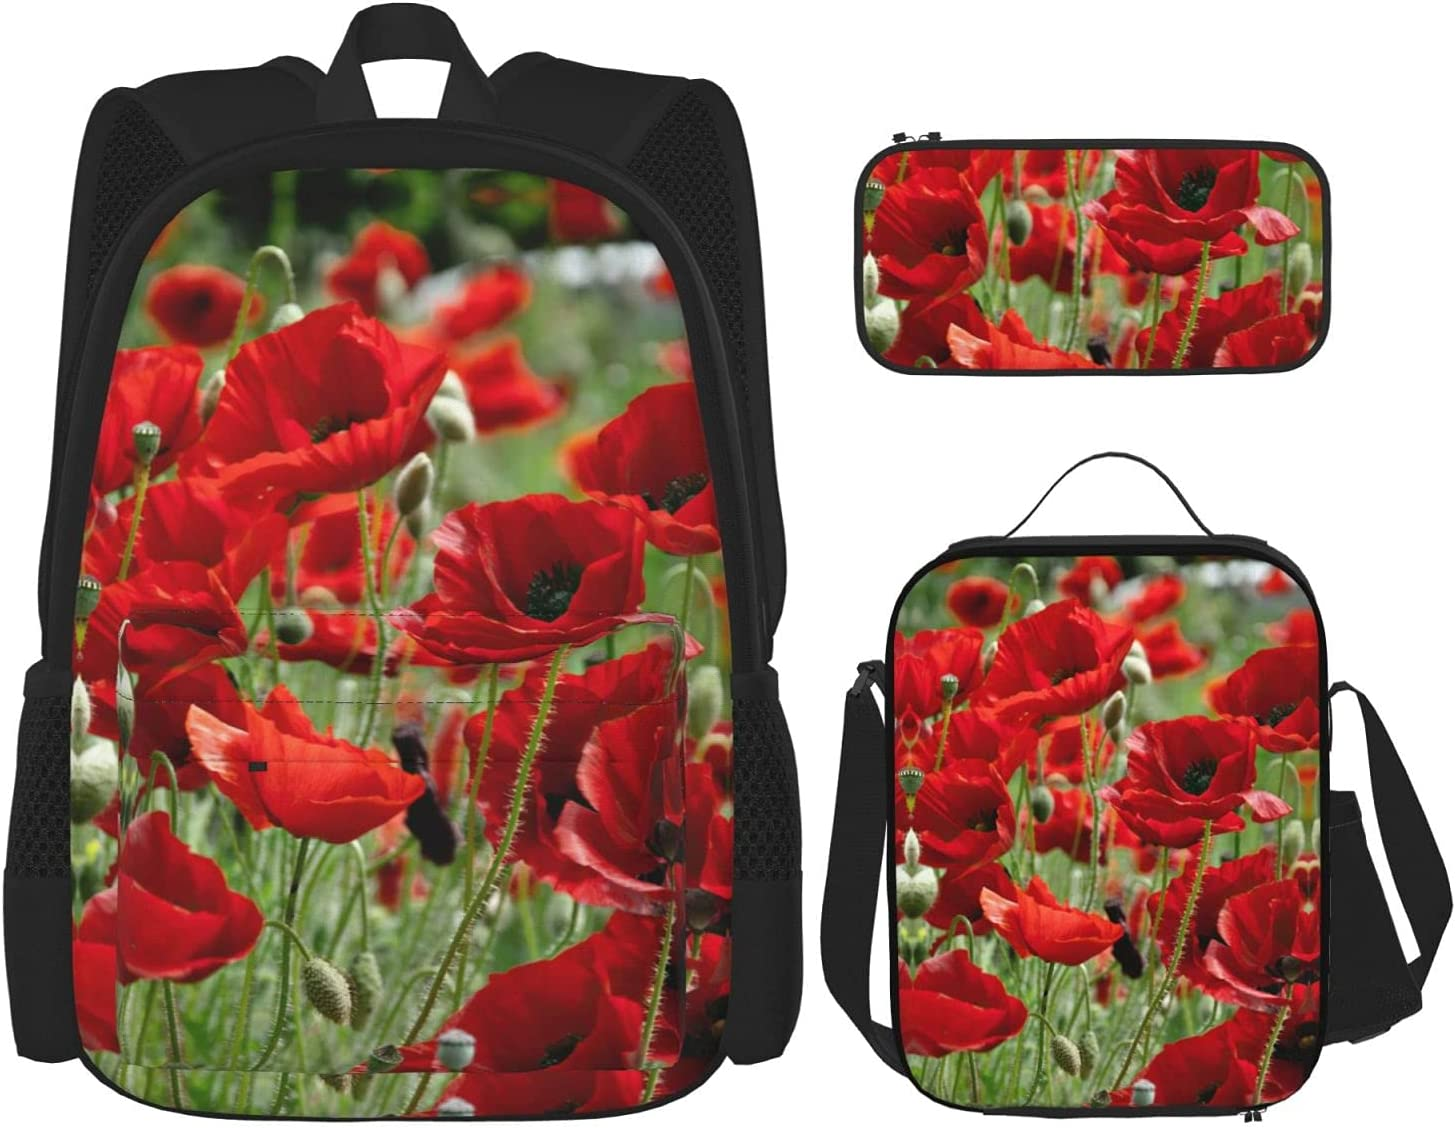 Red Poppies Flowers Children's Max 44% OFF for Backpack Set School 40% OFF Cheap Sale